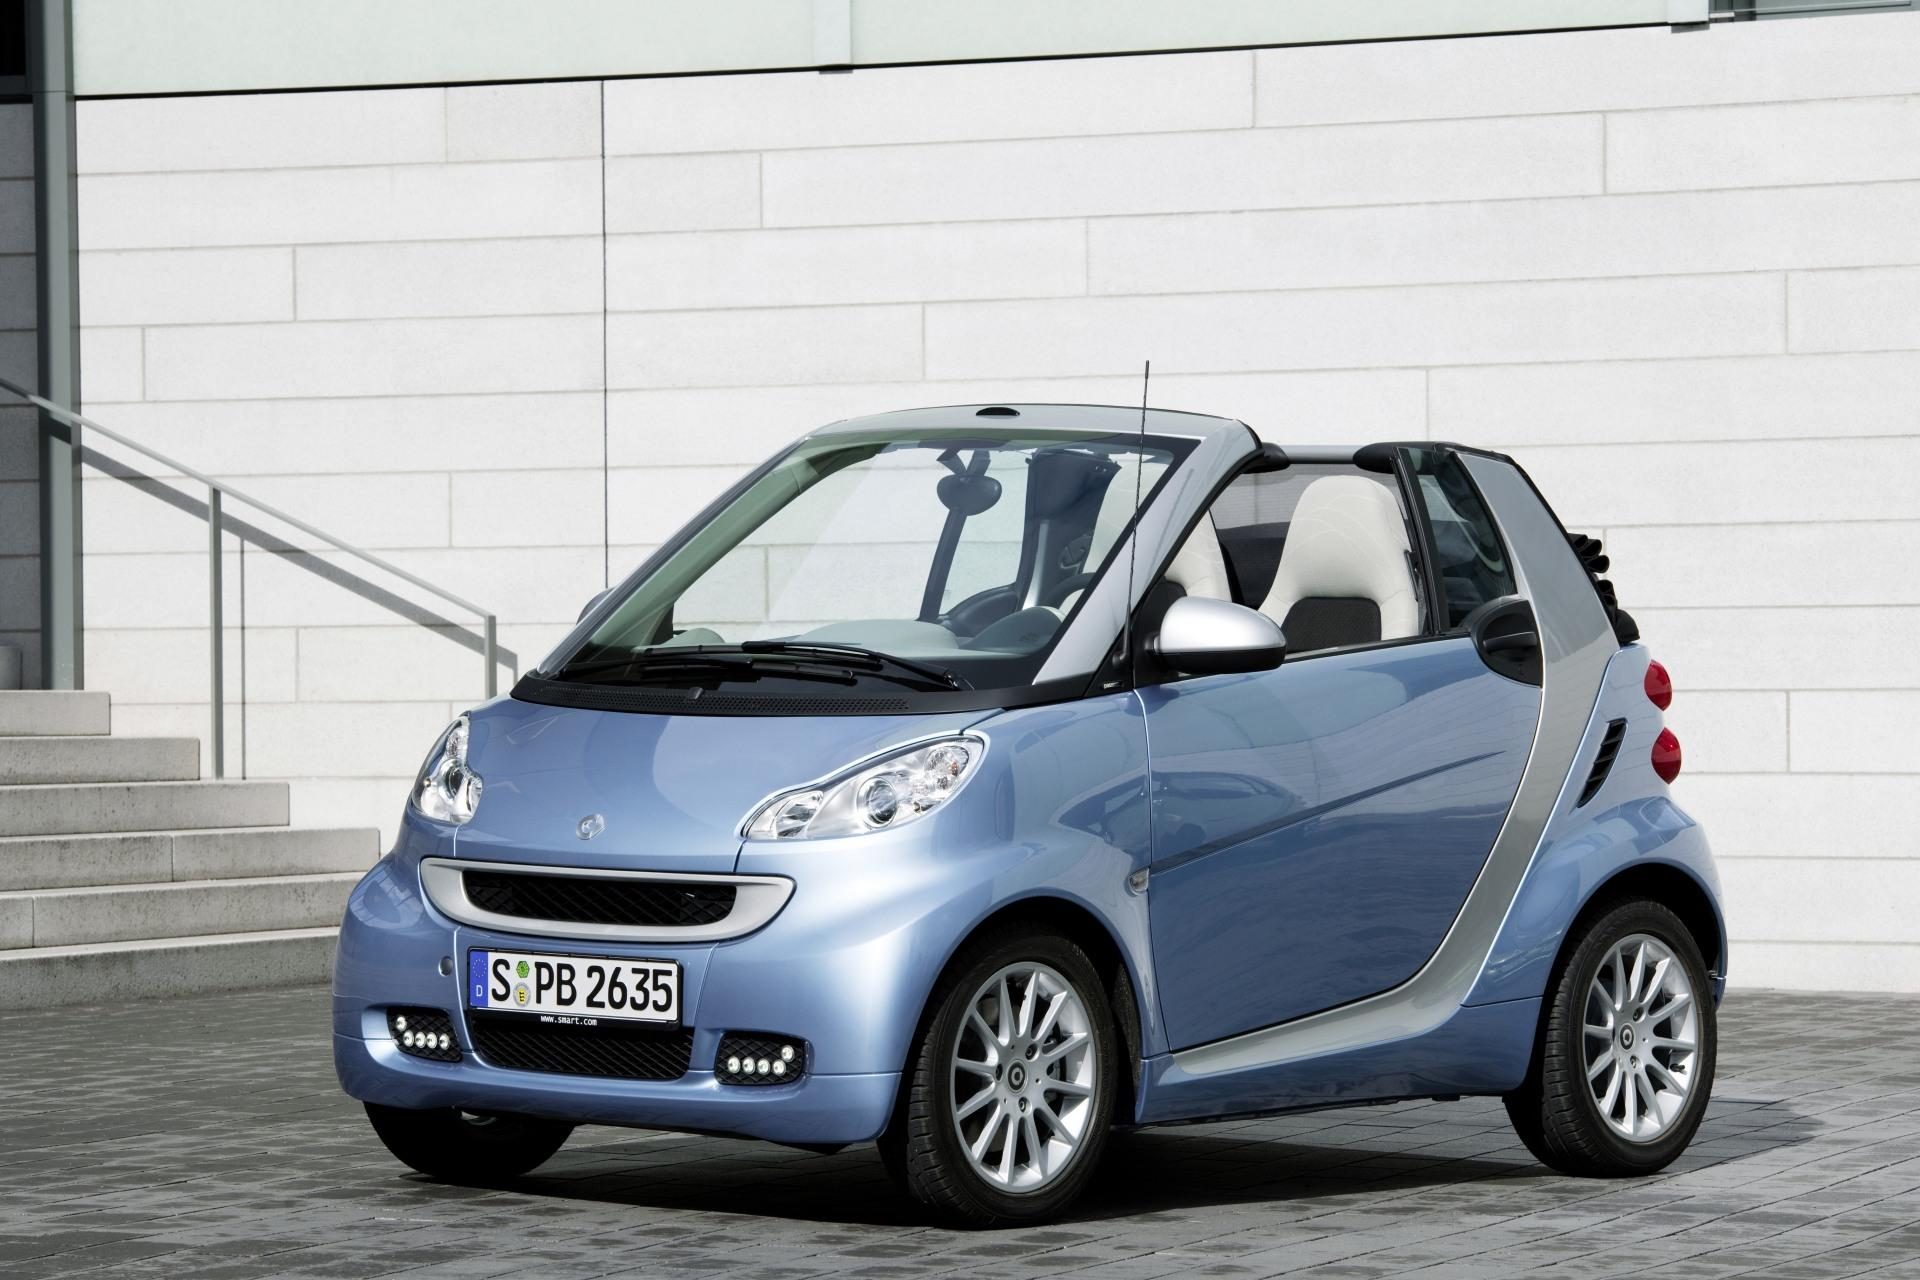 2011 smart fortwo technical specifications and data engine dimensions and mechanical details. Black Bedroom Furniture Sets. Home Design Ideas